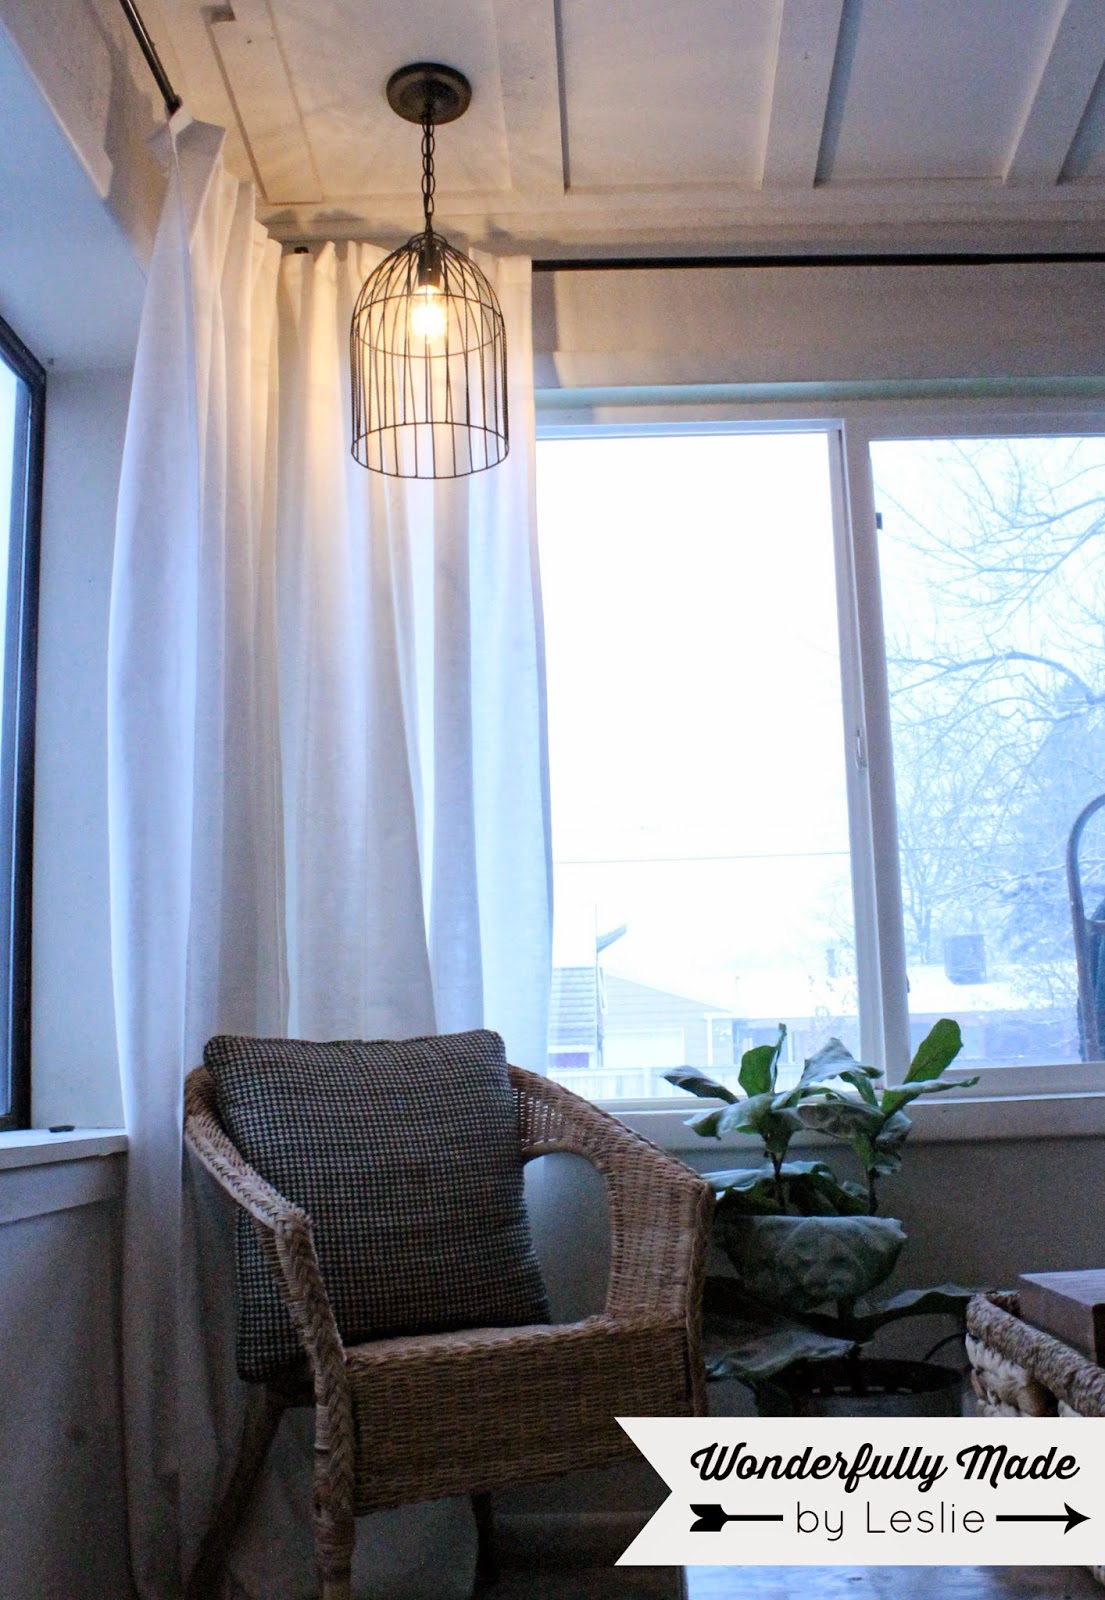 Wonderfully Made: DIY Ceiling Light Fixture